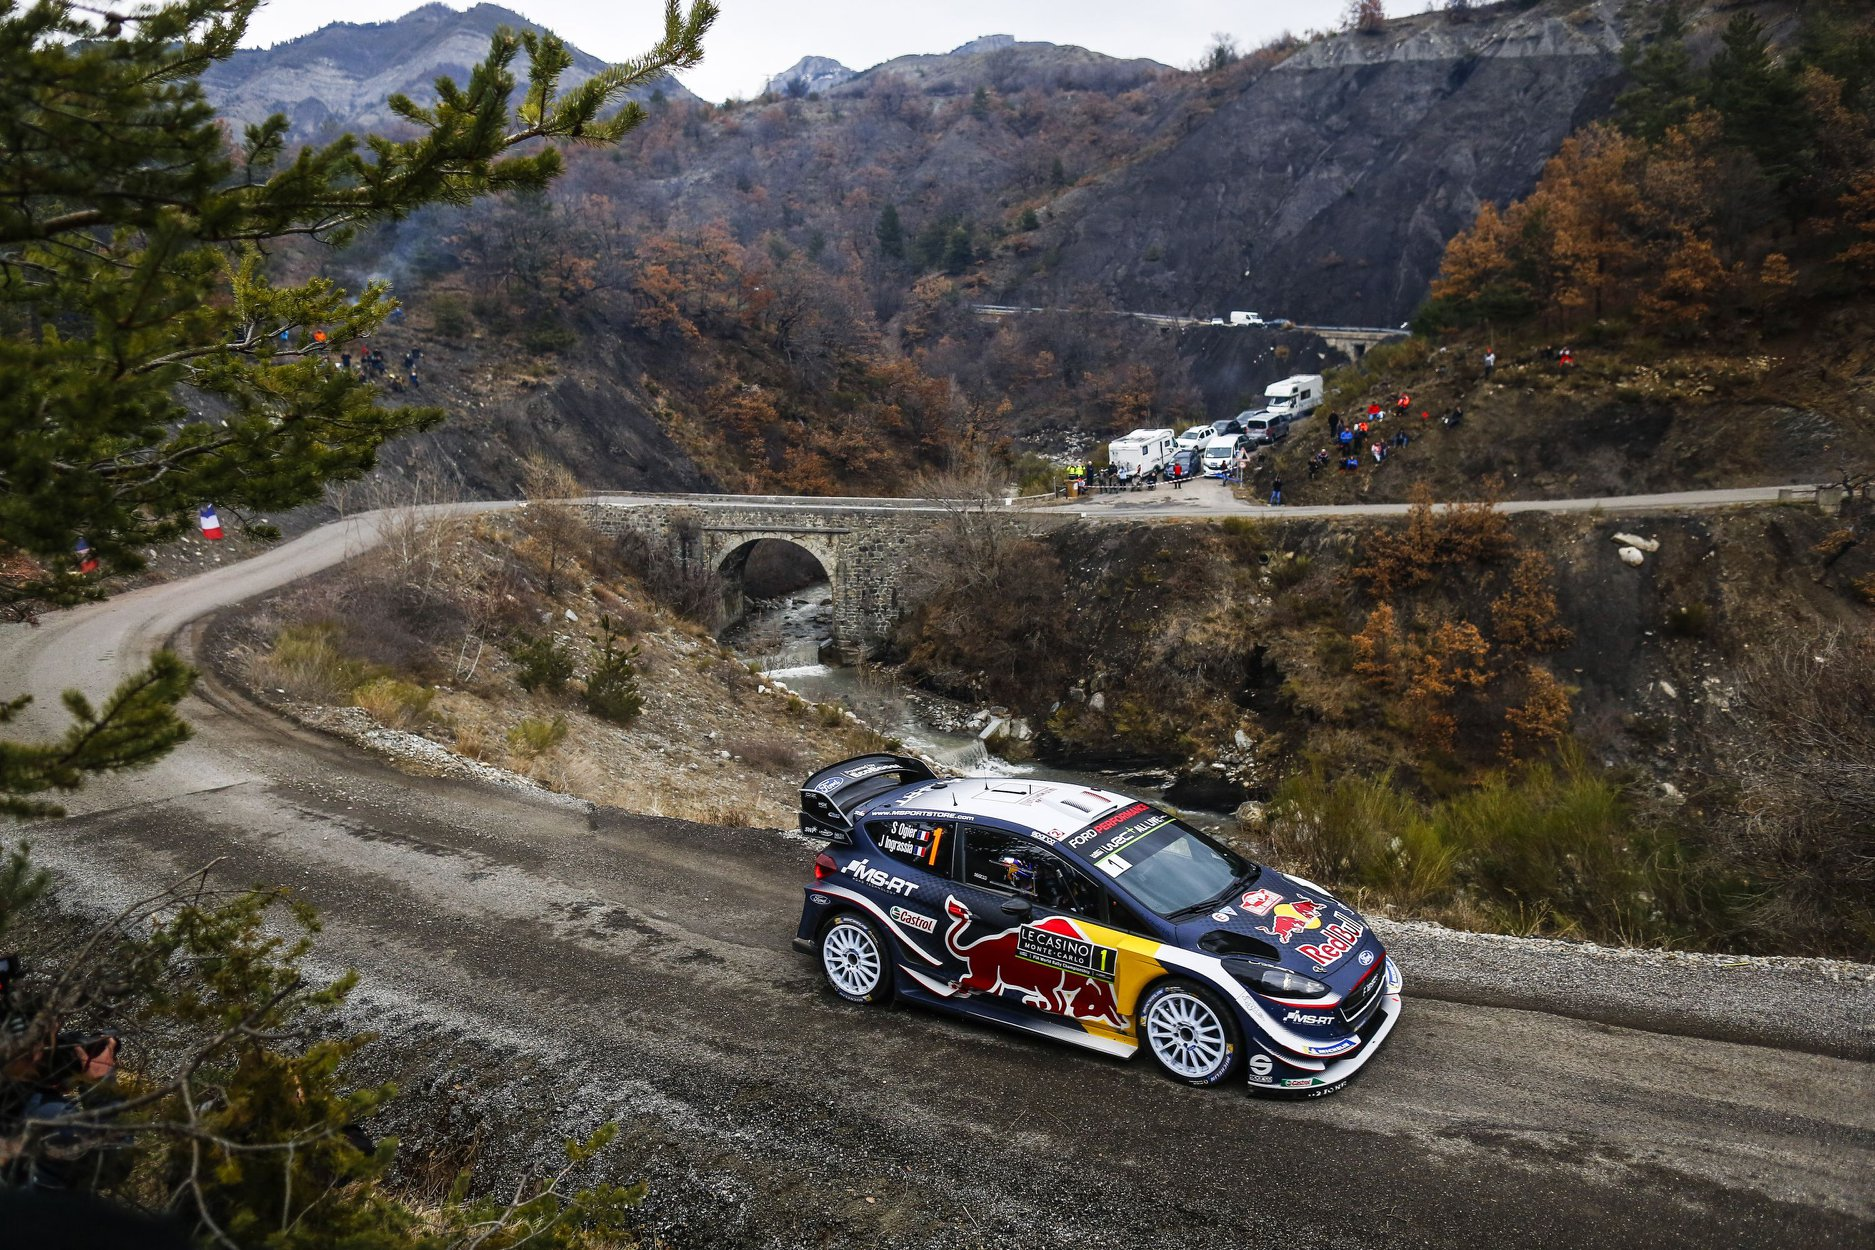 wrc ogier wins season opener at rally monte carlo 2018. Black Bedroom Furniture Sets. Home Design Ideas